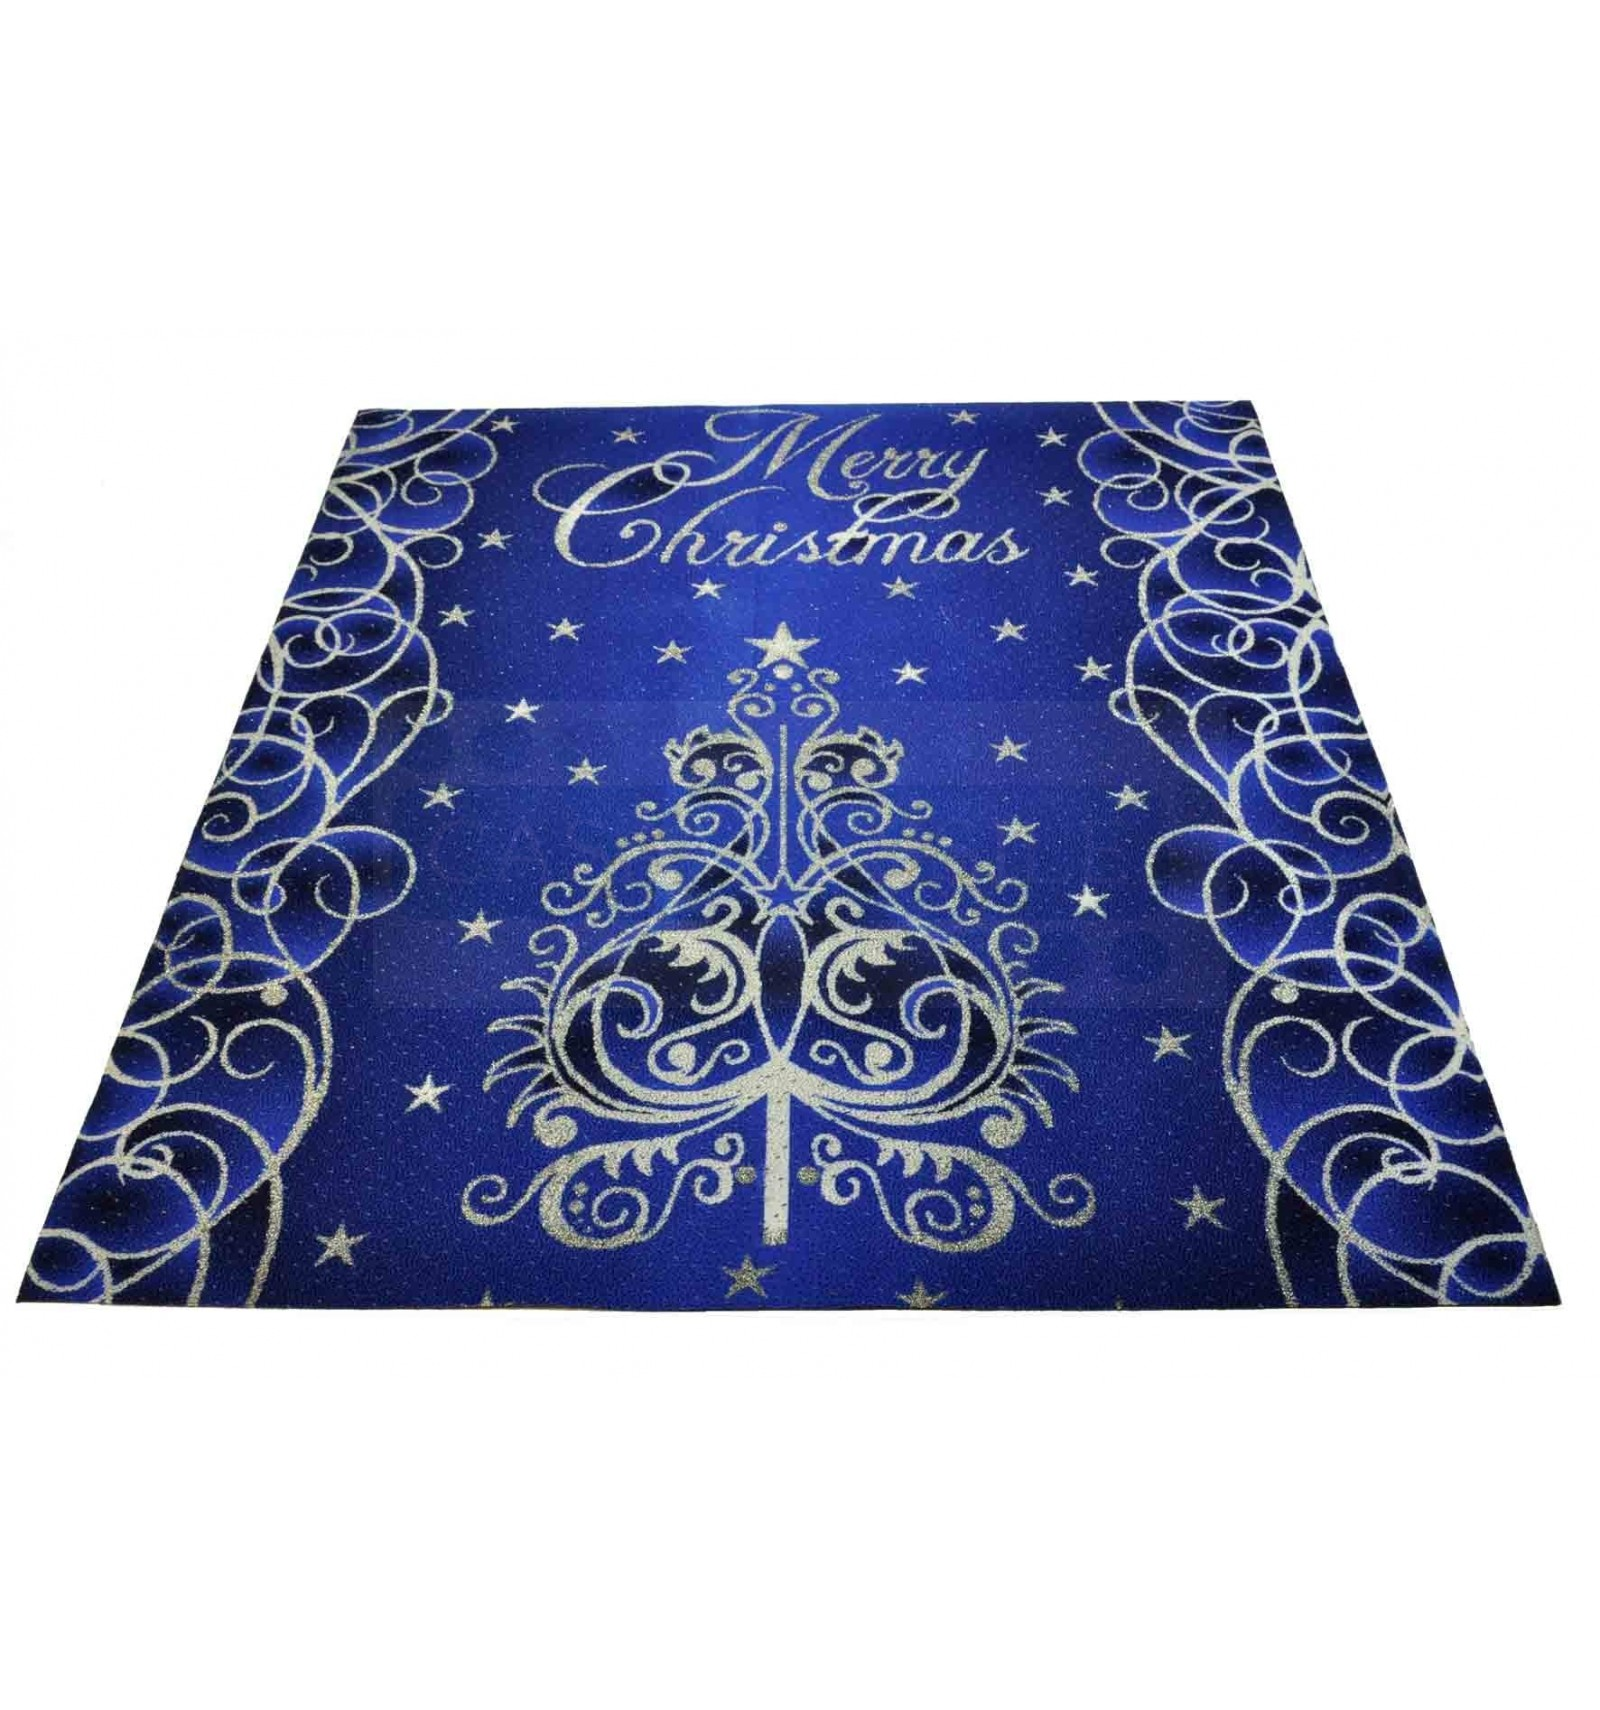 blue christmas tree teppich l ufer 100 x 110 cm b1 casa tessile. Black Bedroom Furniture Sets. Home Design Ideas